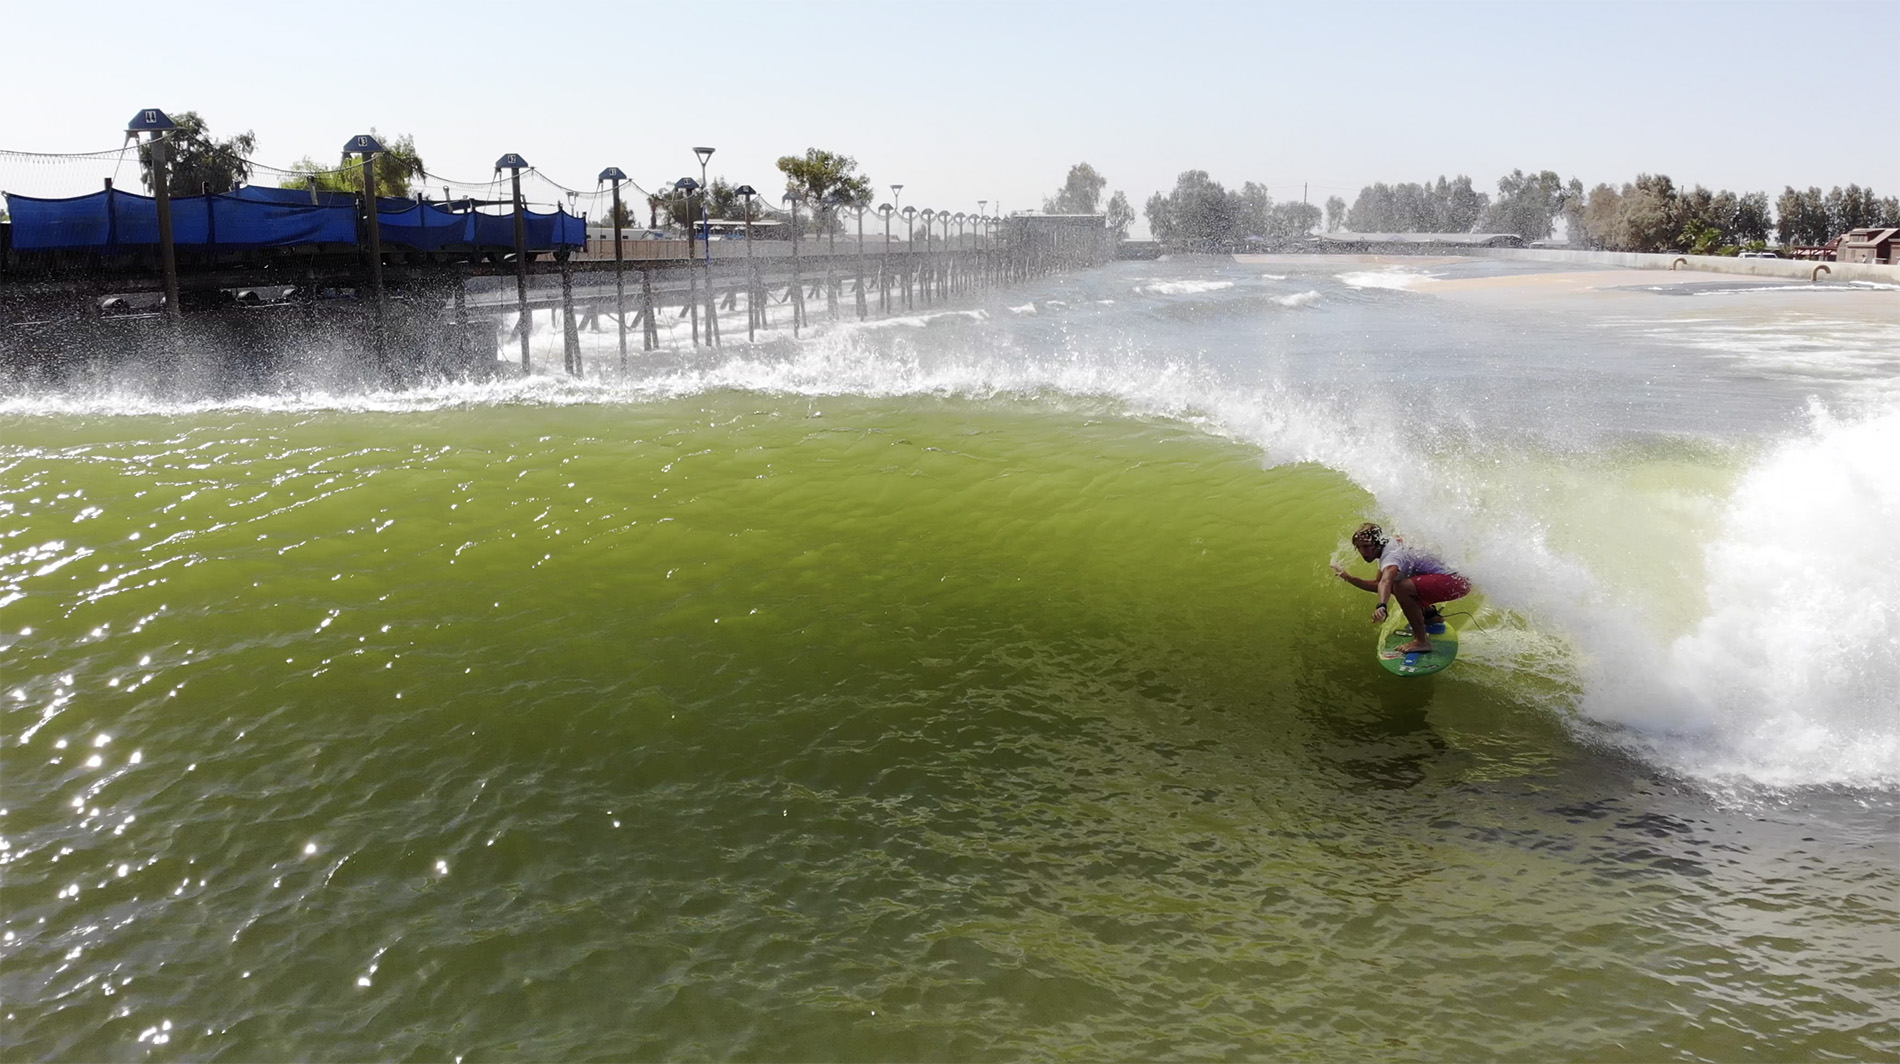 Lucas Fink at the Surf Ranch